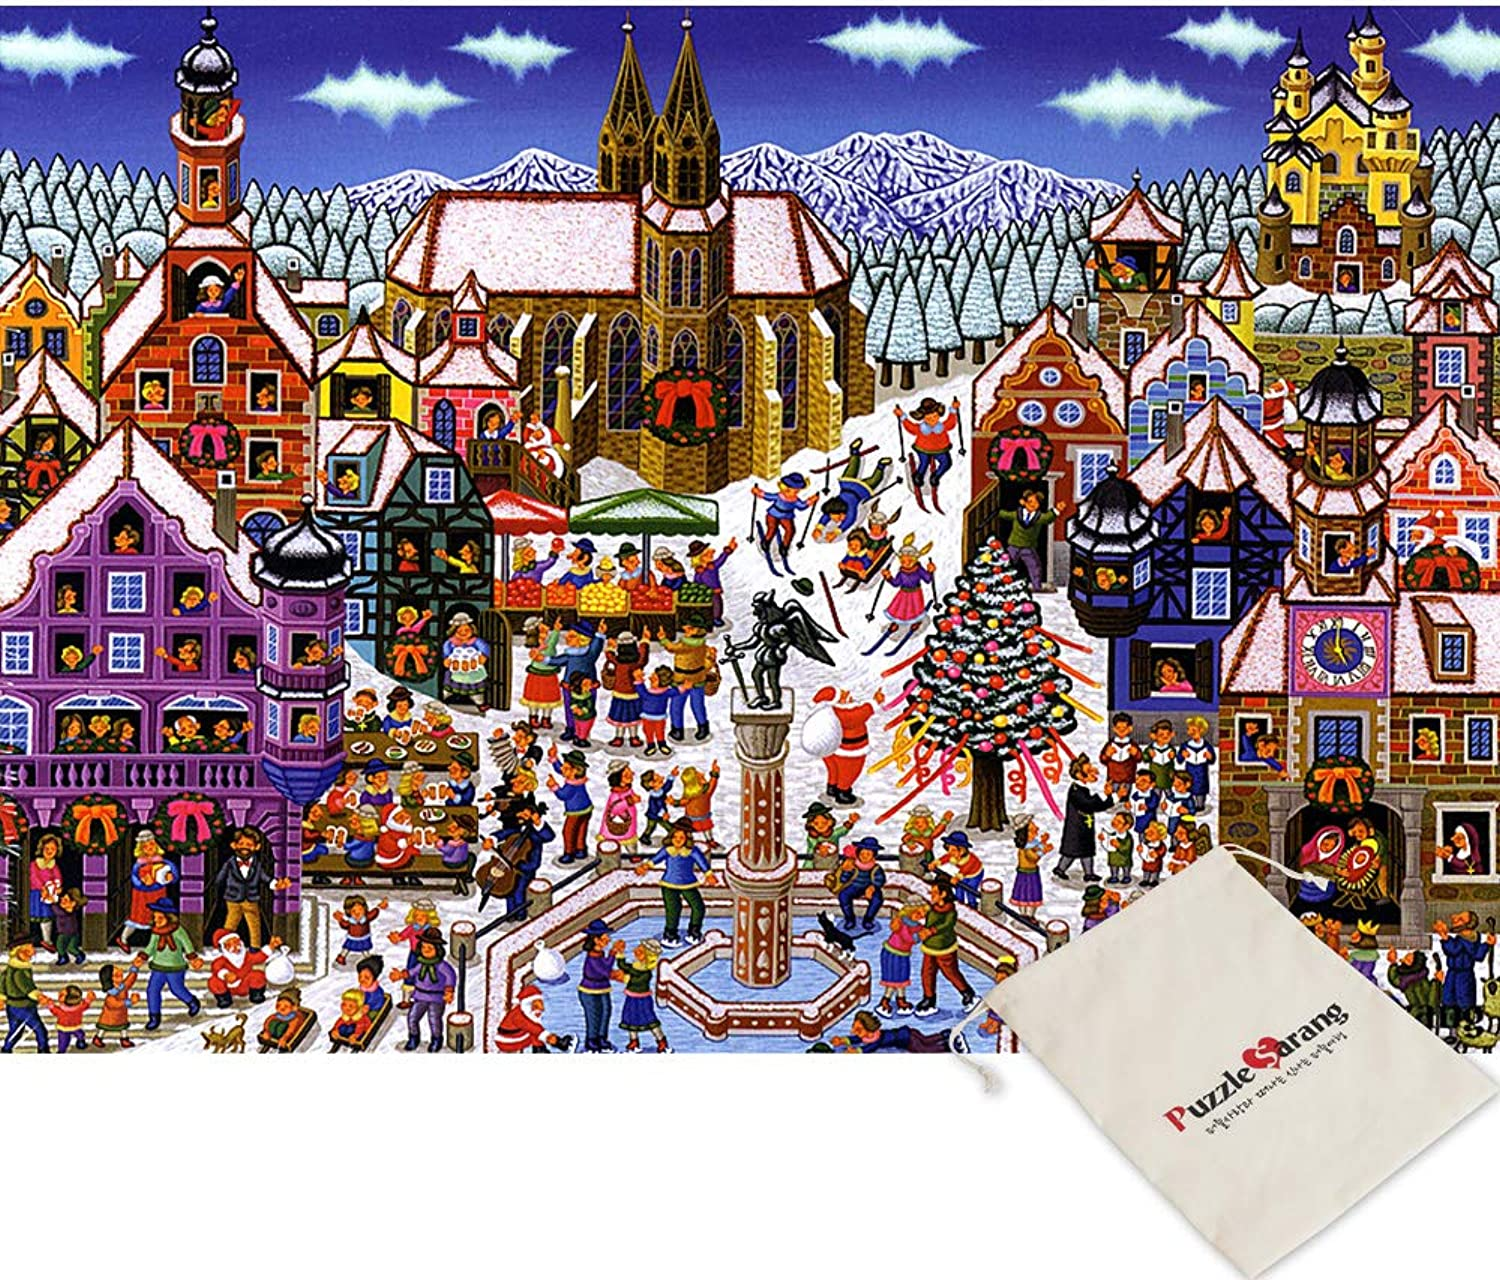 Chamberart Snow Town - 500 Piece Jigsaw Puzzle [Pouch Included]